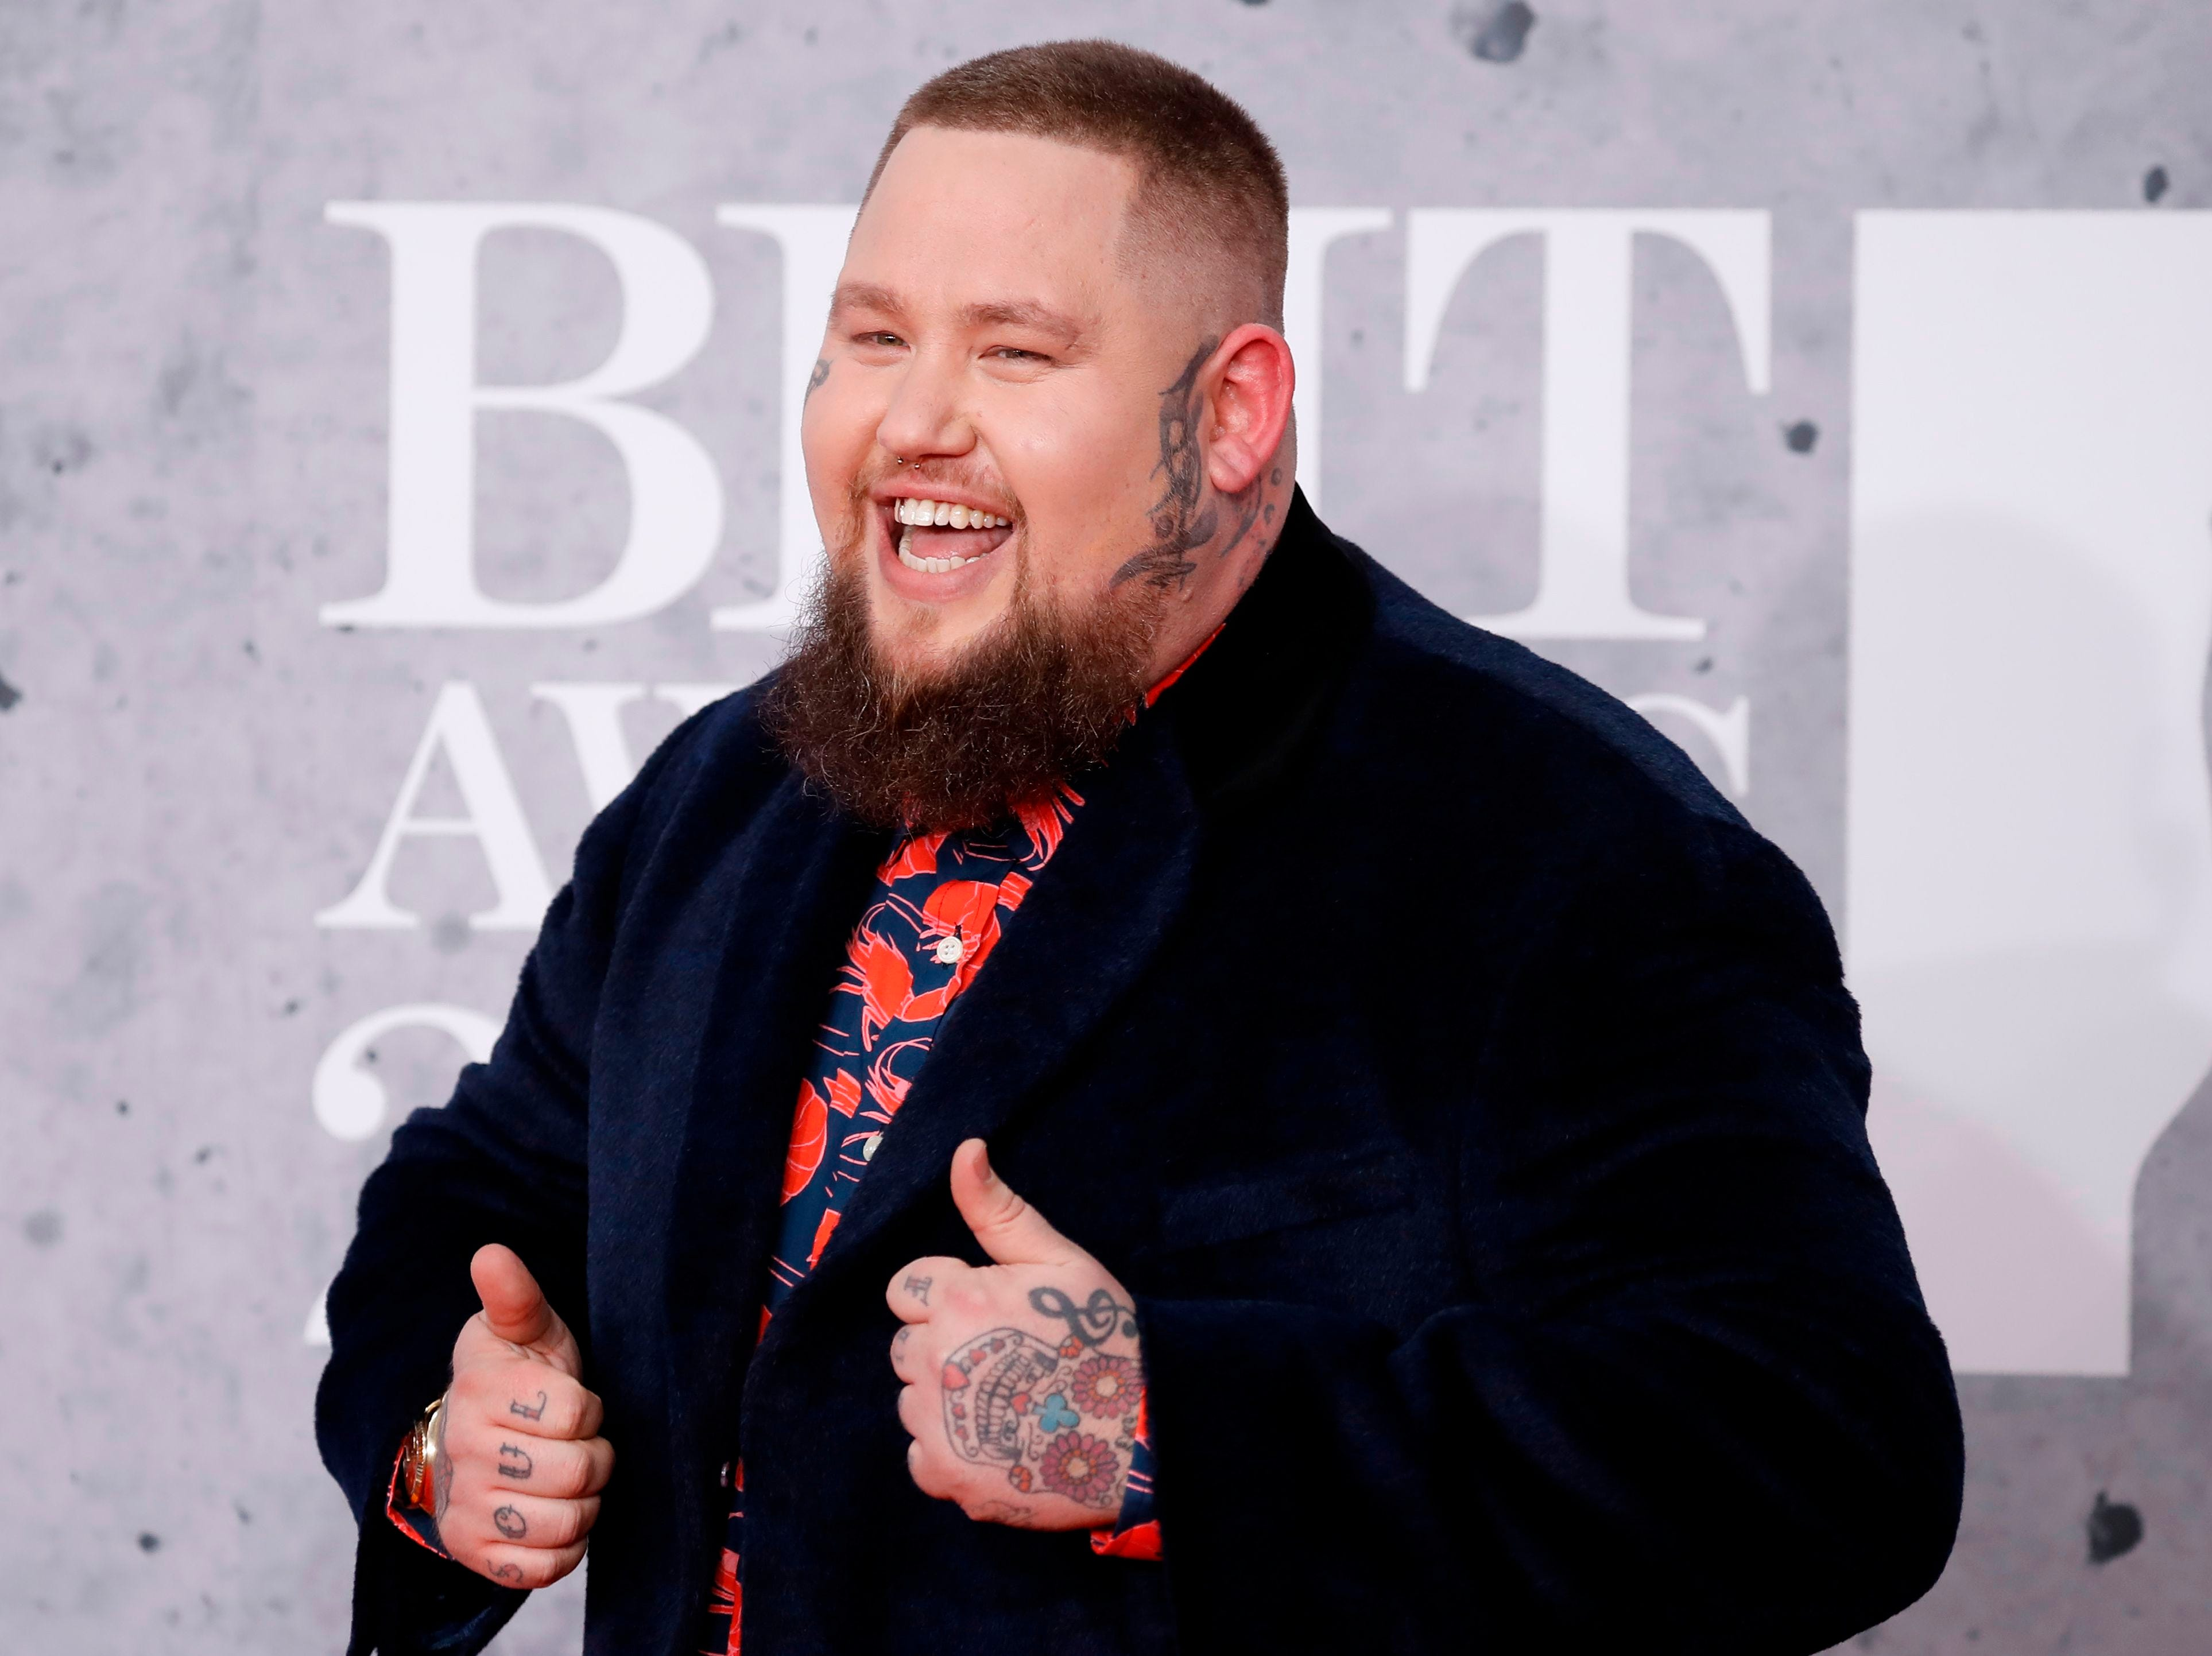 British singer-songwriter Rag'n'Bone Man poses on the red carpet on arrival for the BRIT Awards 2019 in London on February 20, 2019. (Photo by Tolga AKMEN / AFP) / RESTRICTED TO EDITORIAL USE  NO POSTERS  NO MERCHANDISE NO USE IN PUBLICATIONS DEVOTED TO ARTISTSTOLGA AKMEN/AFP/Getty Images ORIG FILE ID: AFP_1DO11F